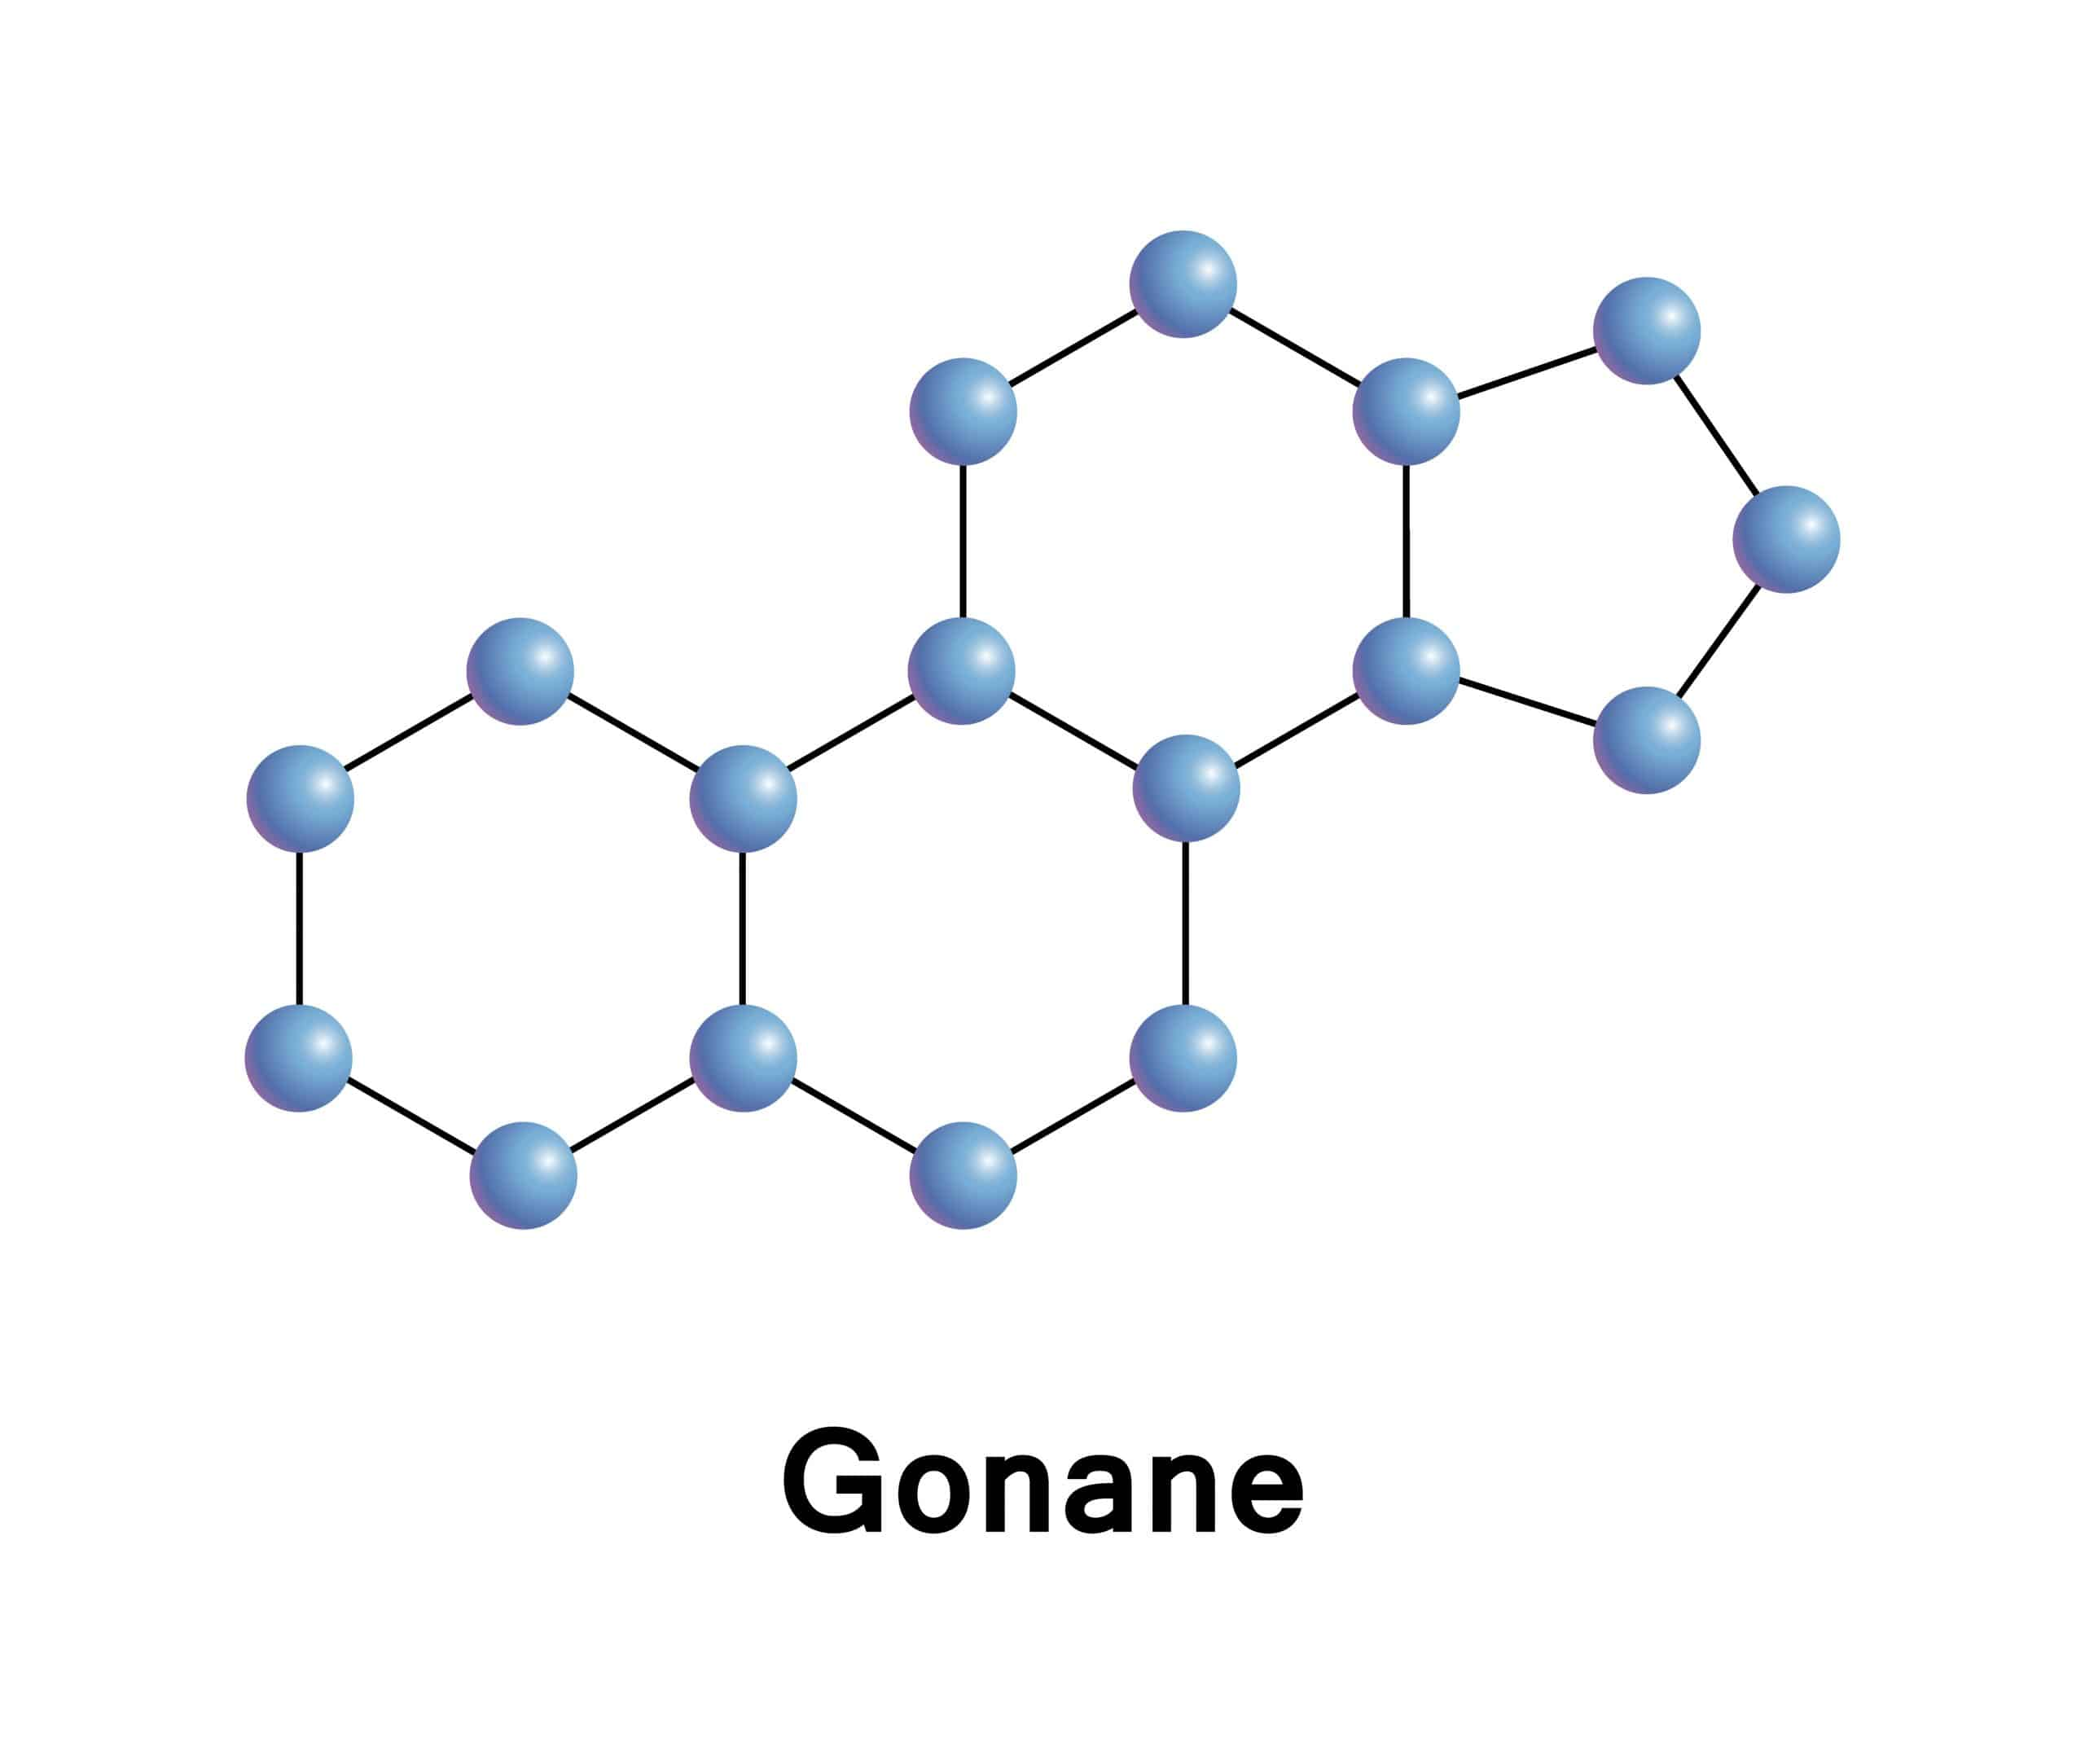 A diagram of the gonane molecule